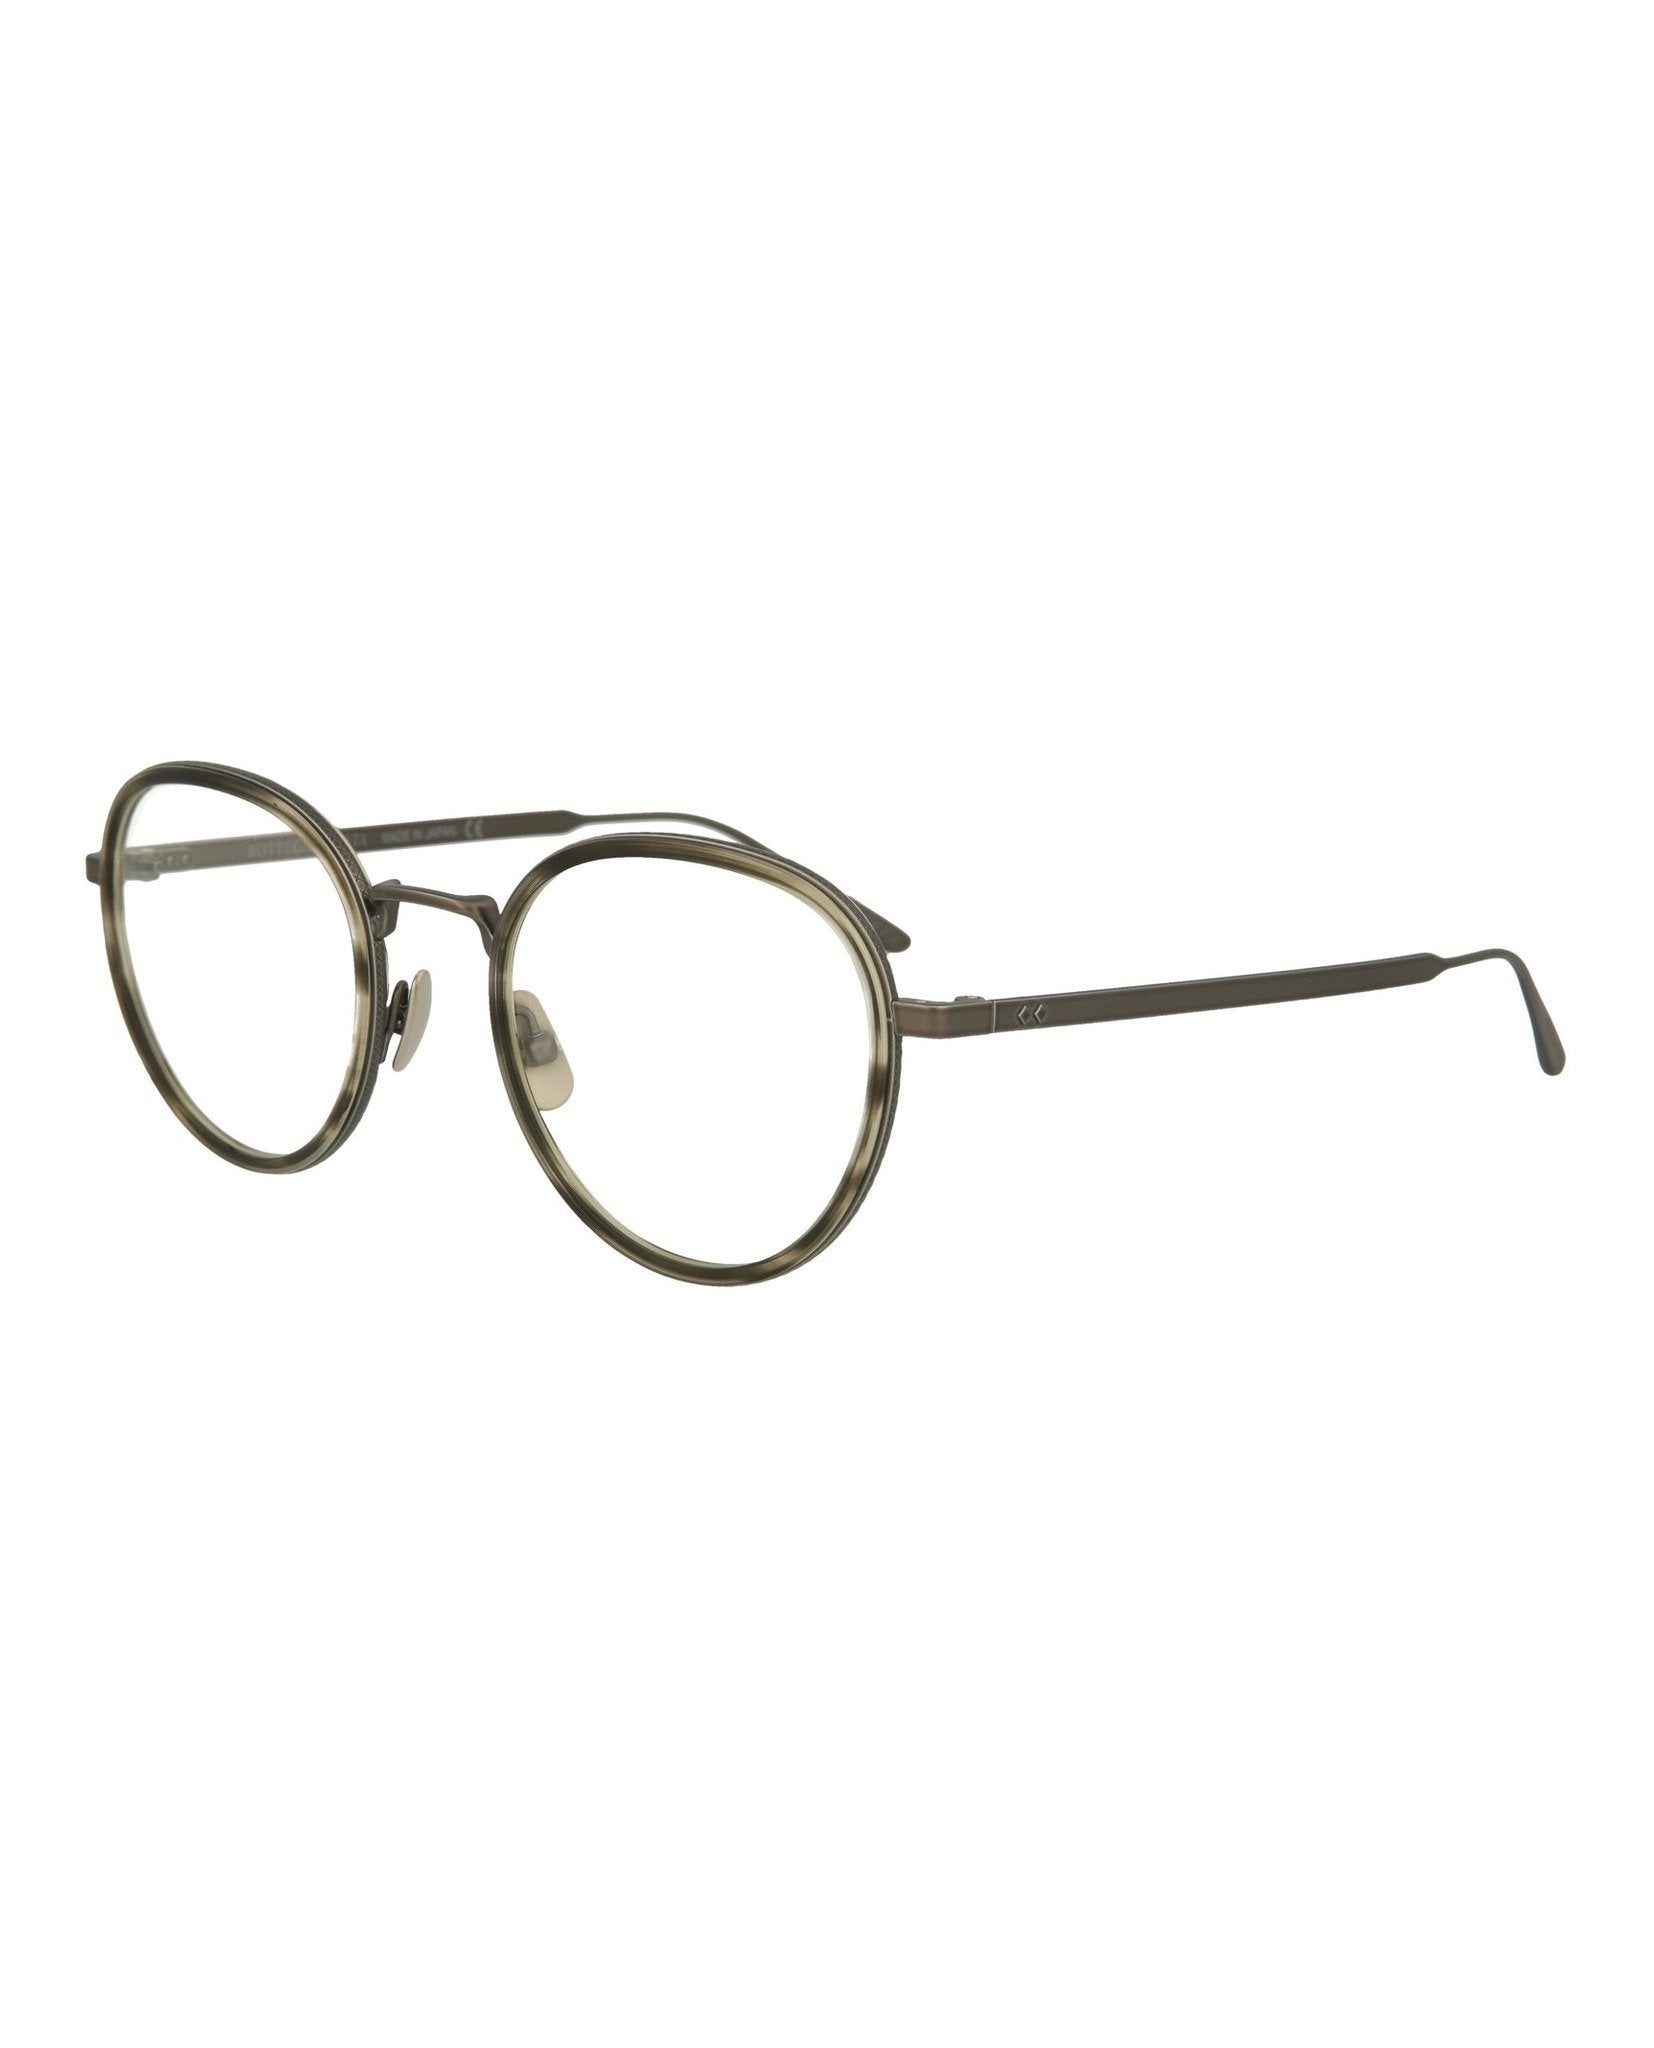 Bottega Veneta Round/Oval Optical Frames